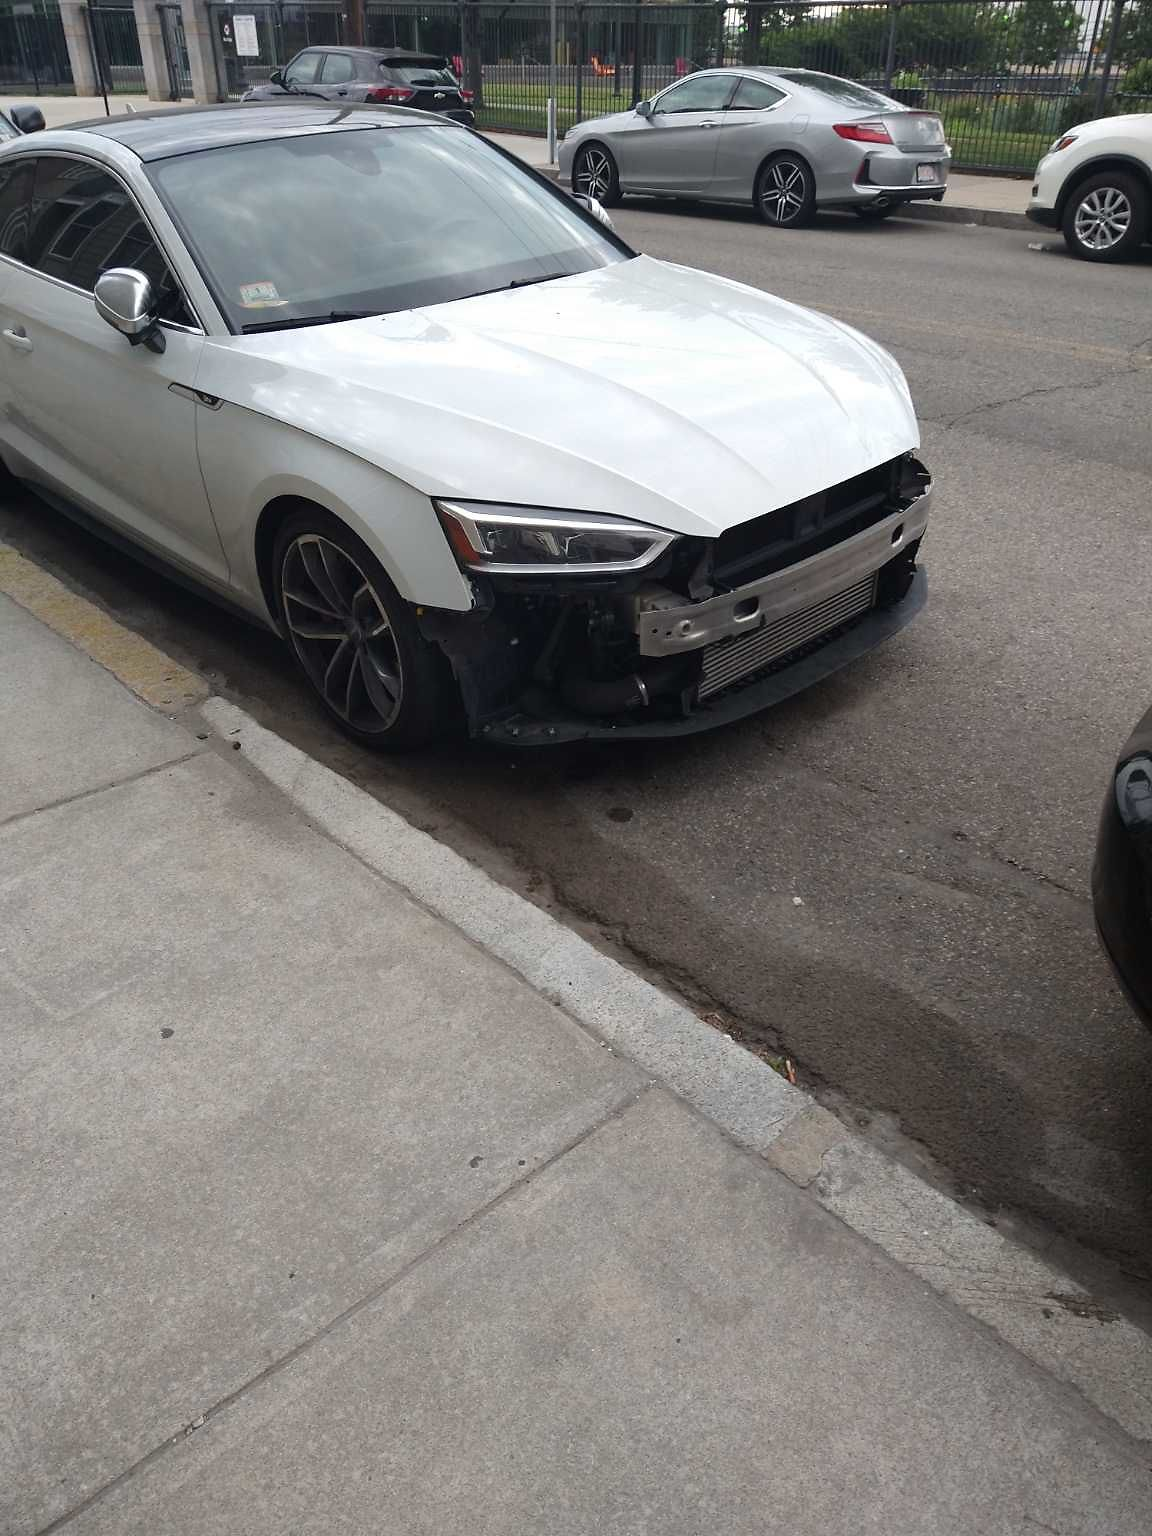 One of many cars from Logan Automotive on street